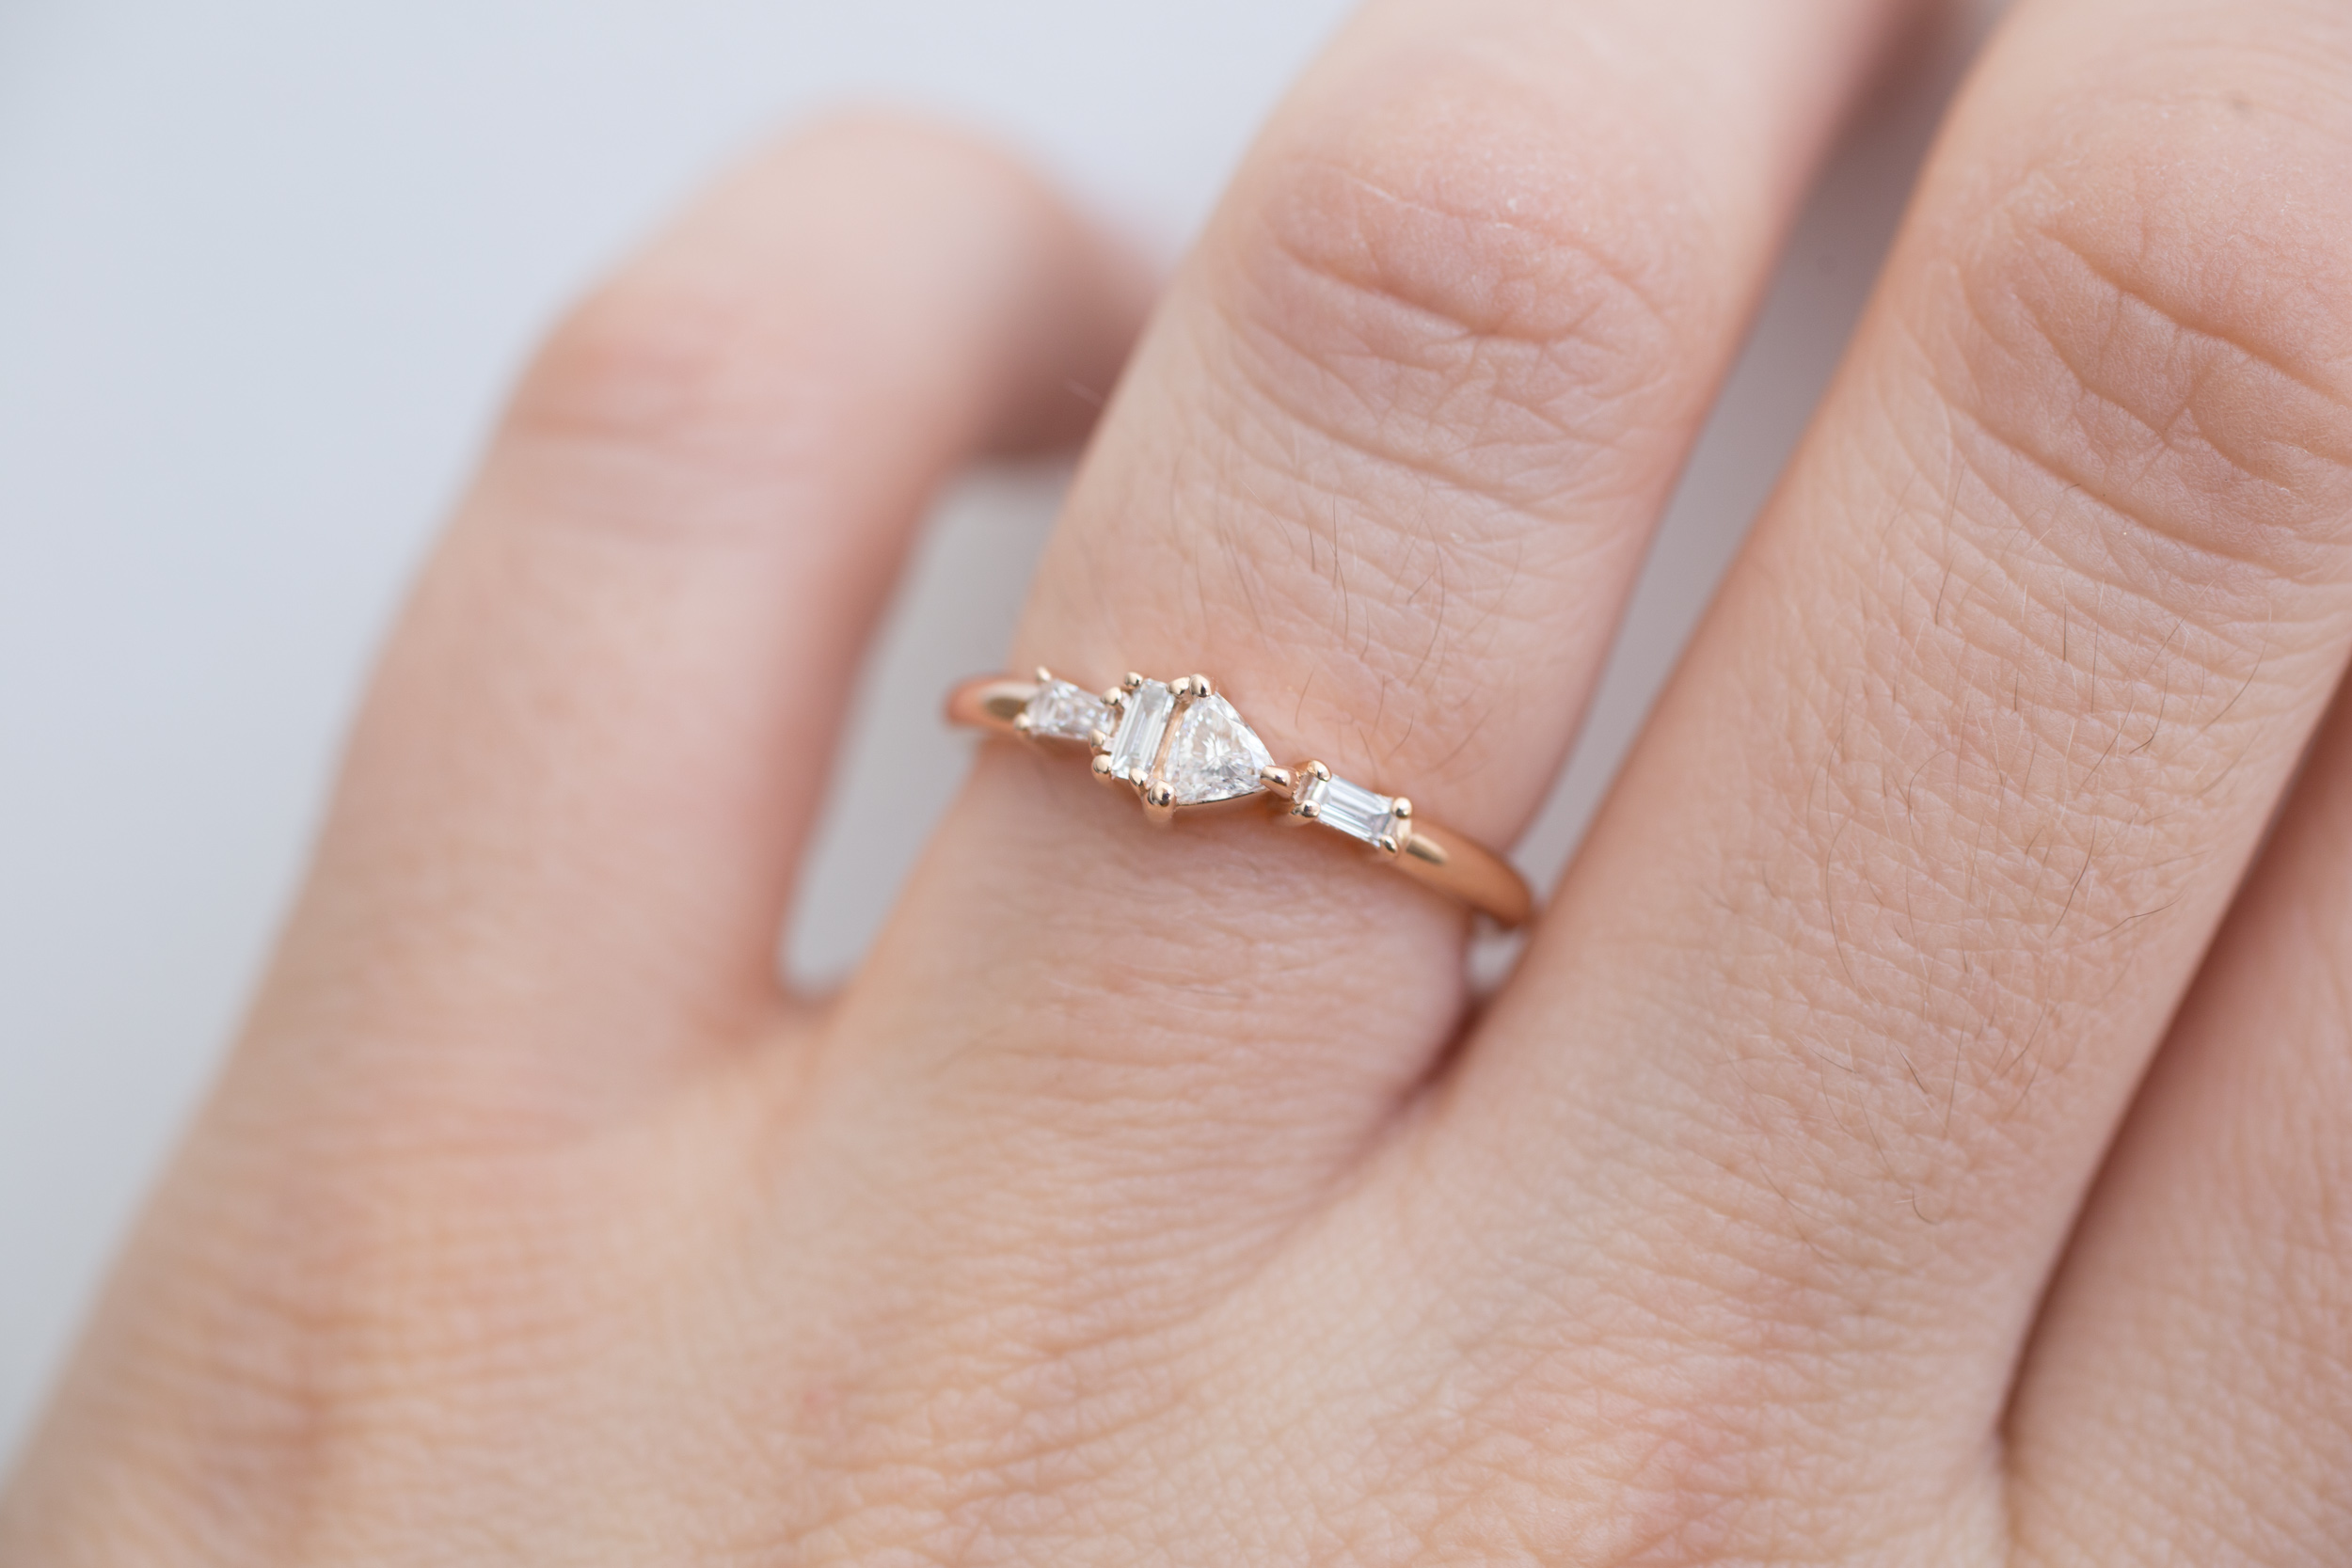 Becca + Molly Triangle Baguette Ring-6.jpg